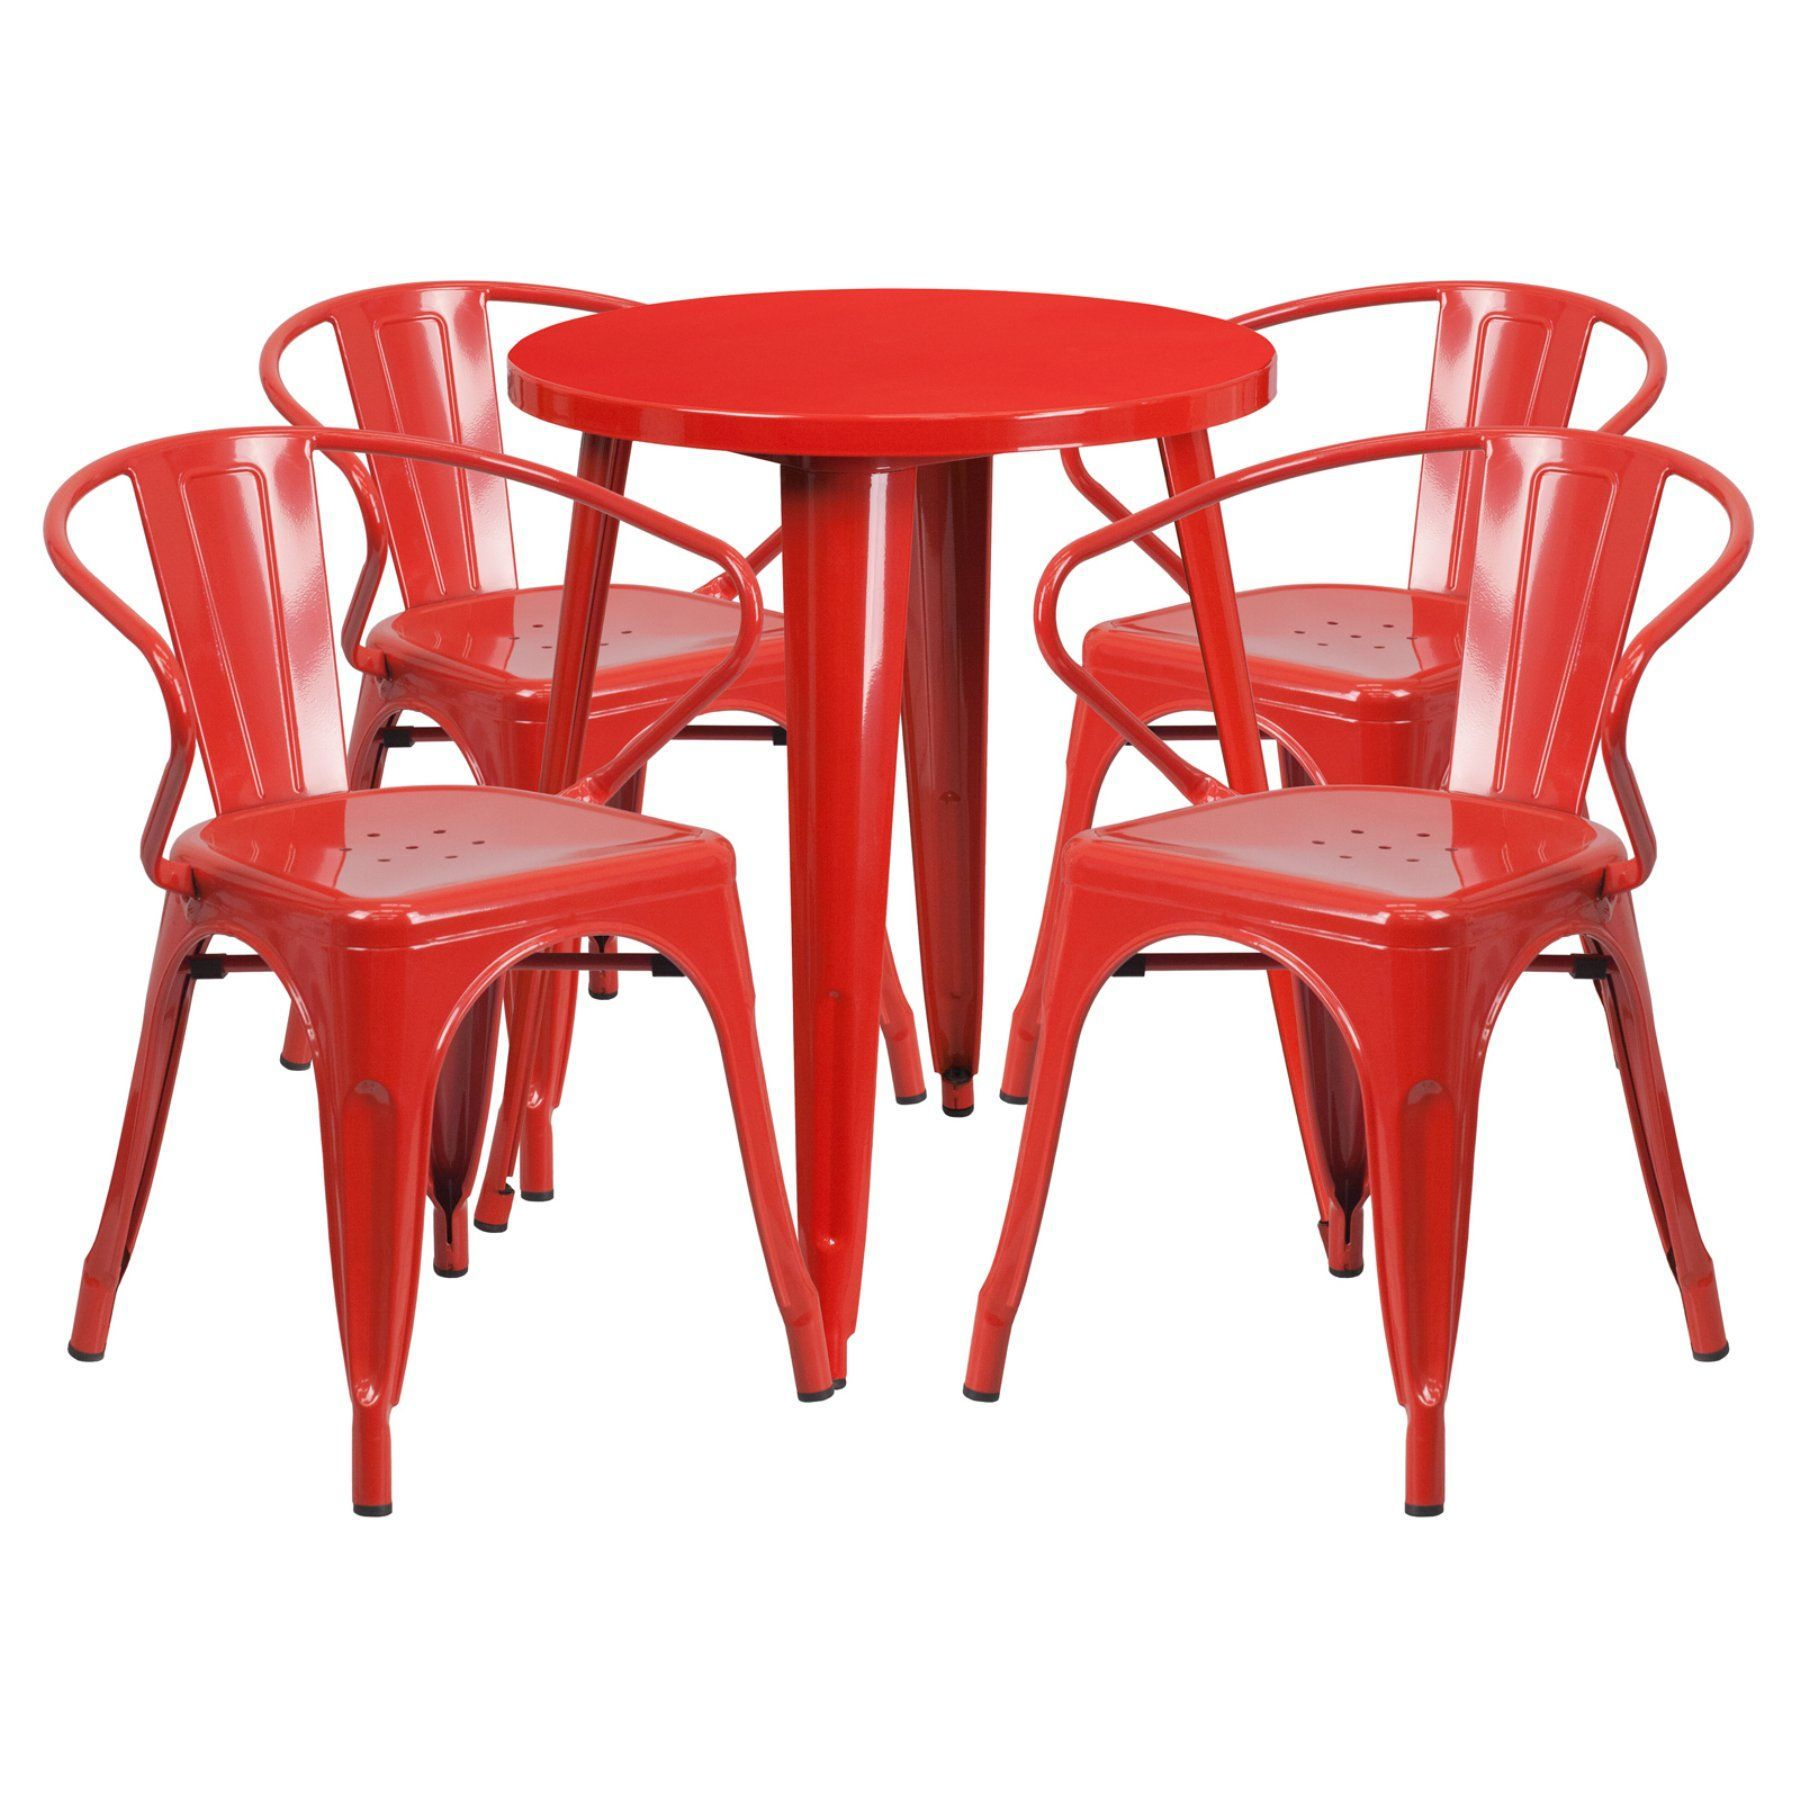 Flash Furniture 24 In. Round Metal Indoor-Outdoor Table Set with 4 Splat Back Arm Chairs - CH-51080TH-4-18ARM-RED-GG